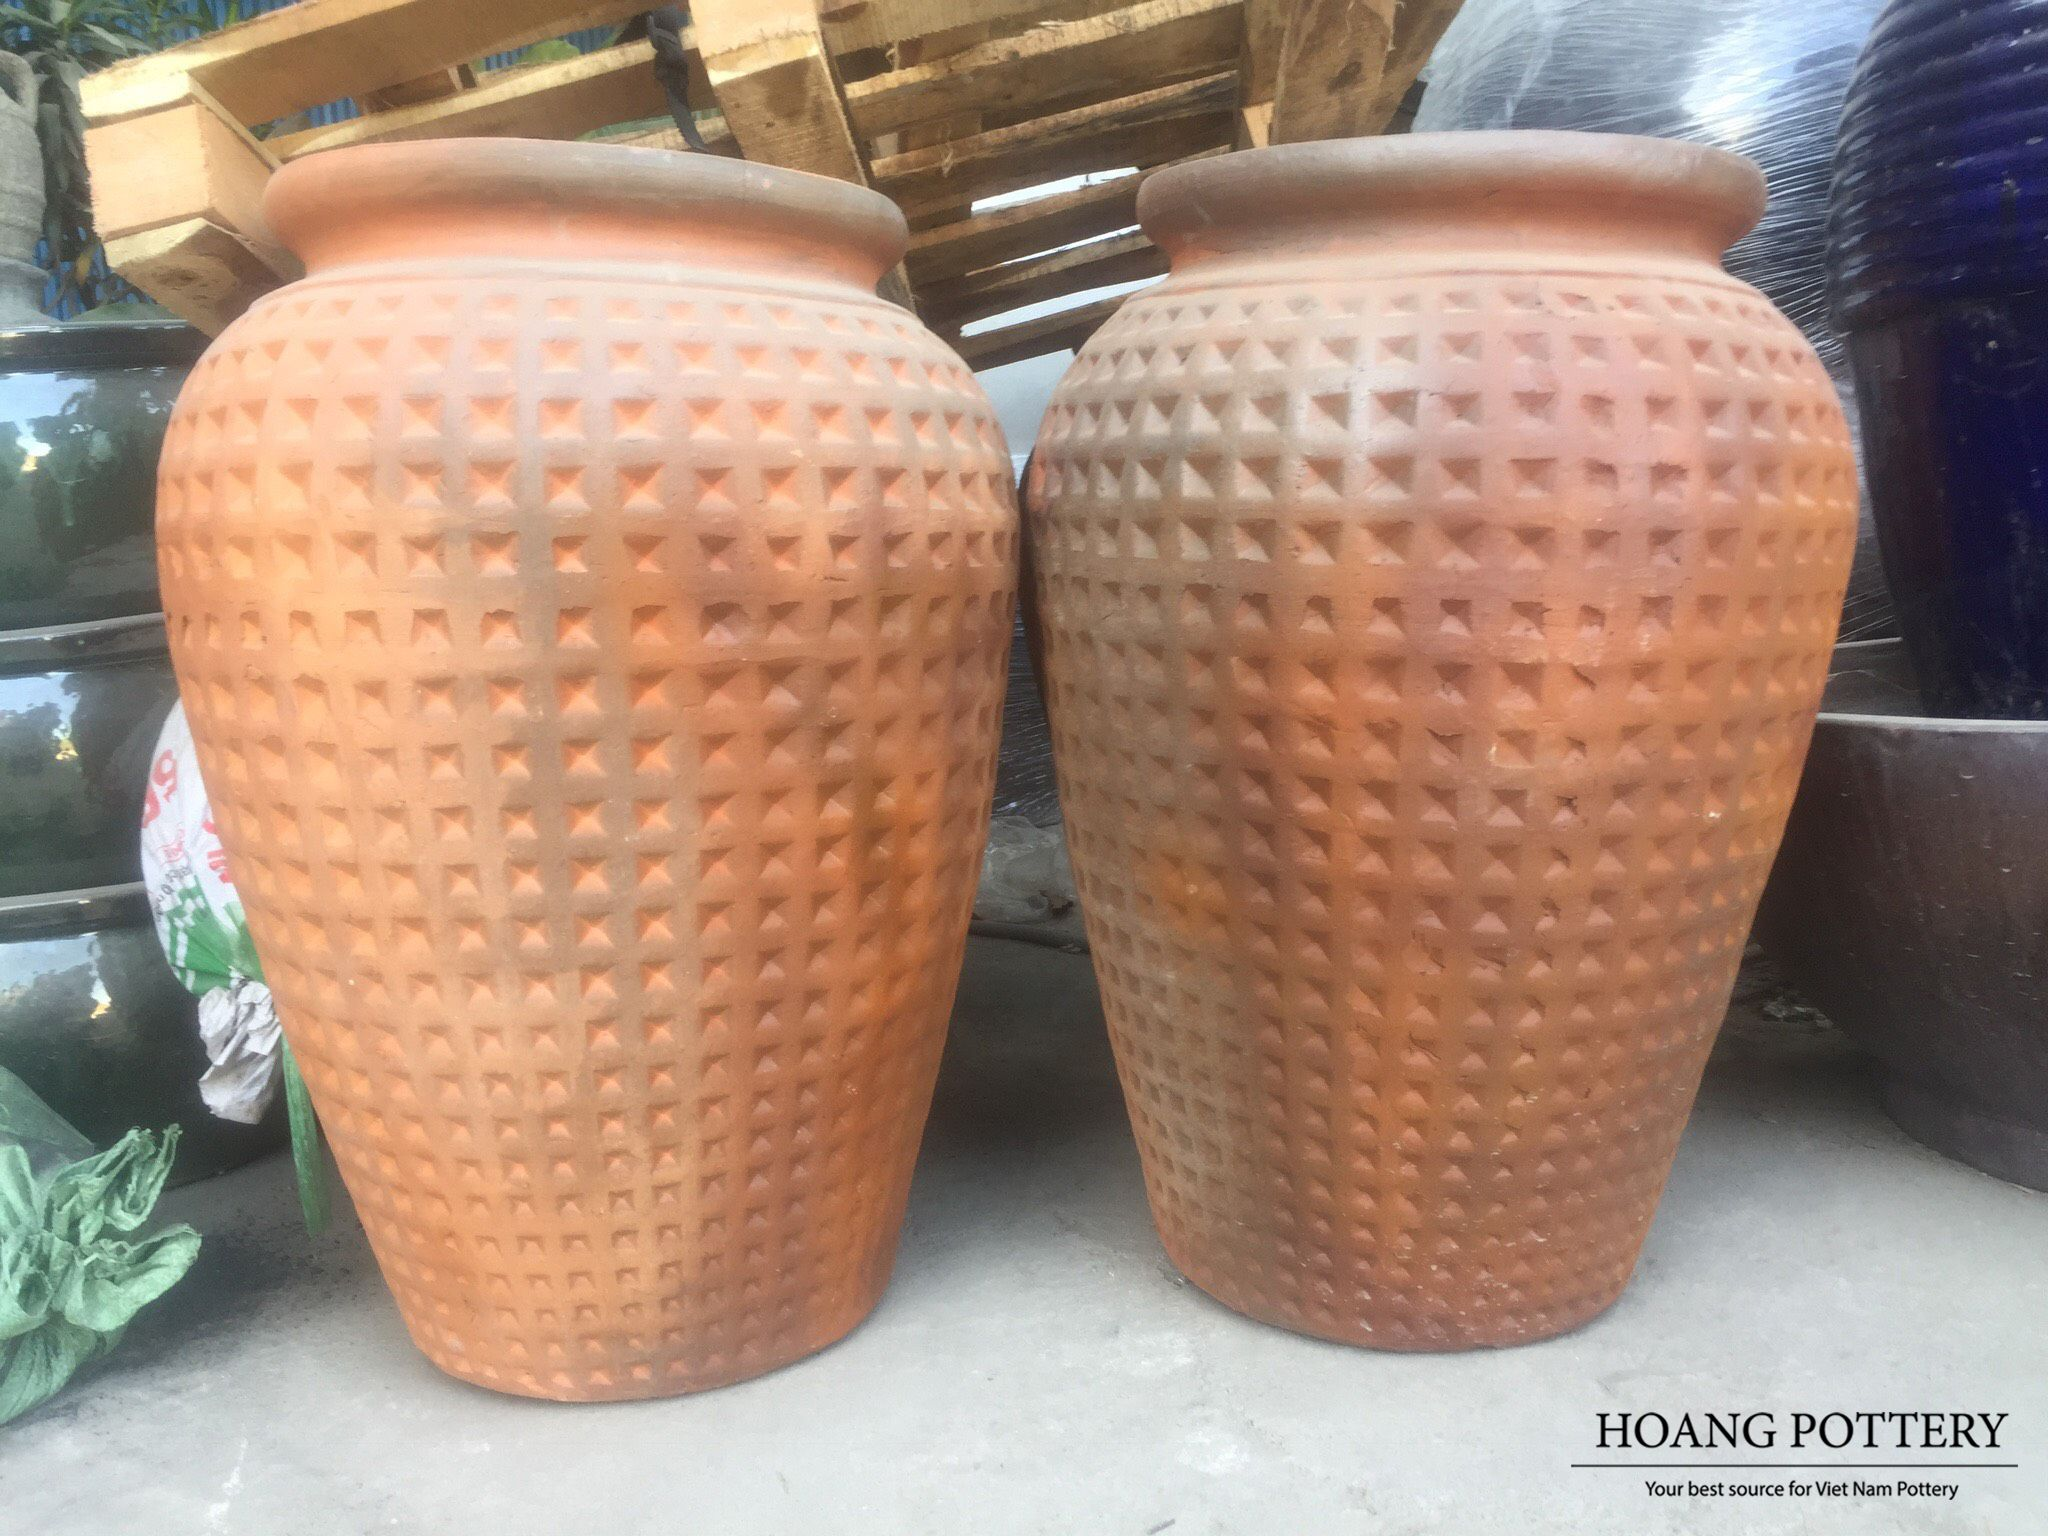 These Are Big Orange Brown Jar Shaped Ceramic Planters With Thick Rims And Concave Diamond Patterns 60cm 60cm 80cm Website Www Hoangpottery Com Hoangpott Trong 2020